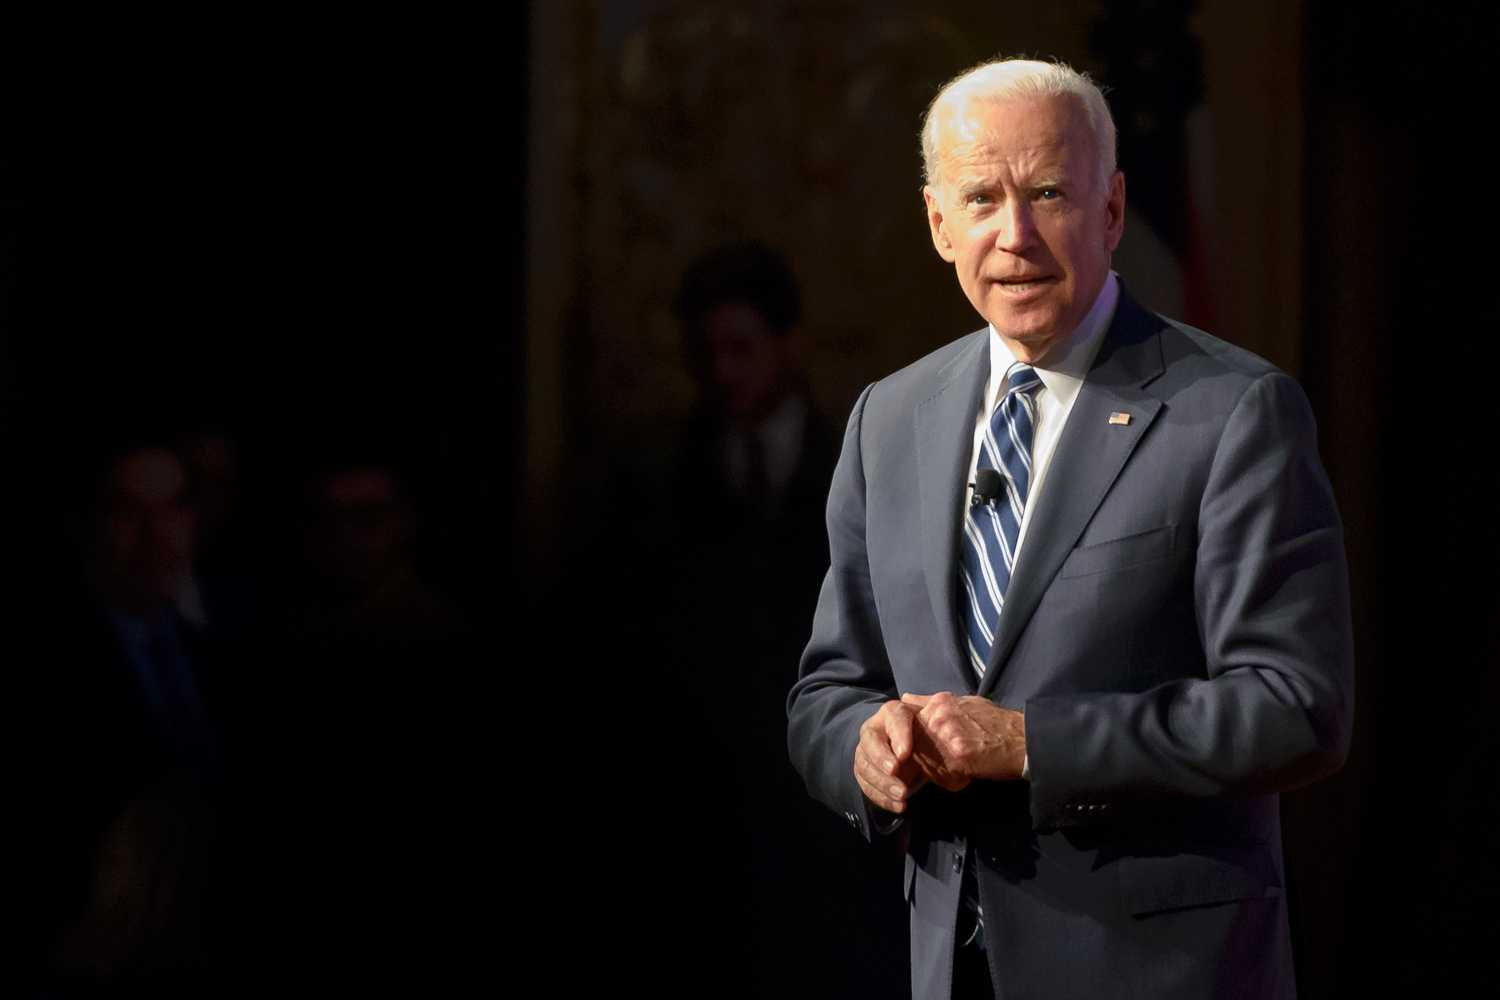 Former Vice President Joe Biden addresses the audience before the conclusion of his American Promise tour event at Carnegie Music Hall Monday evening. (Photo by Thomas Yang | Visual Editor)